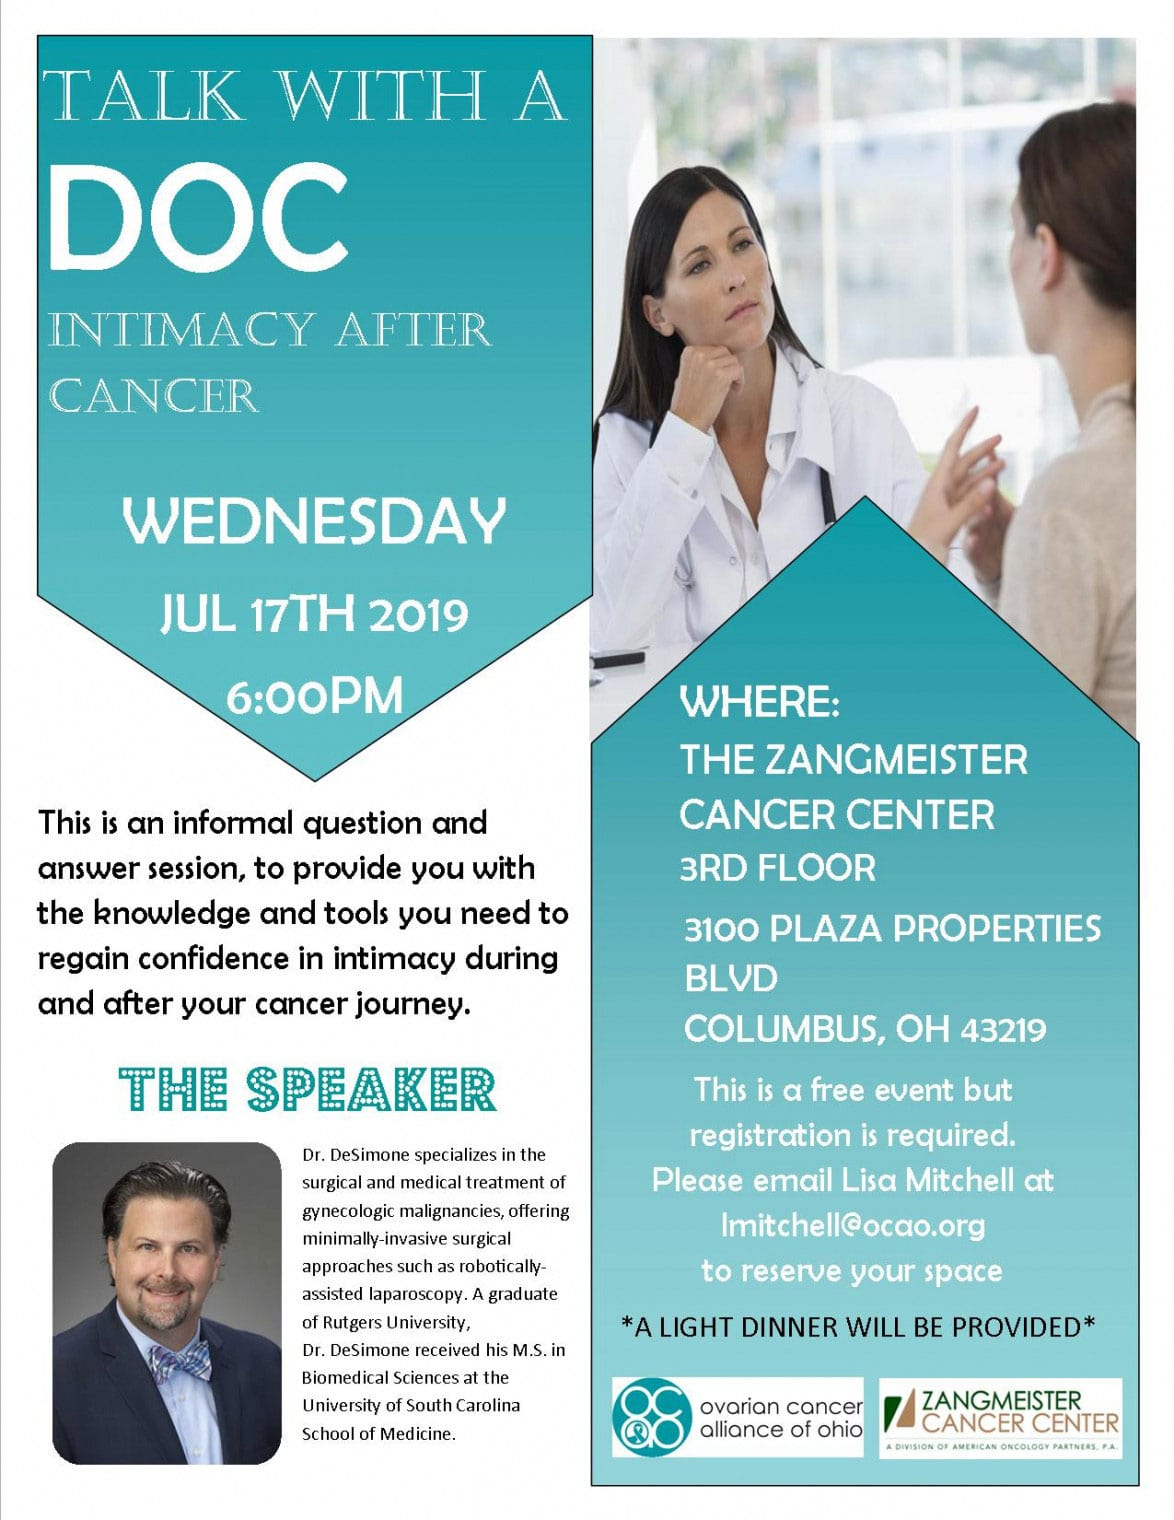 Talk With a Doc Intimacy After Cancer